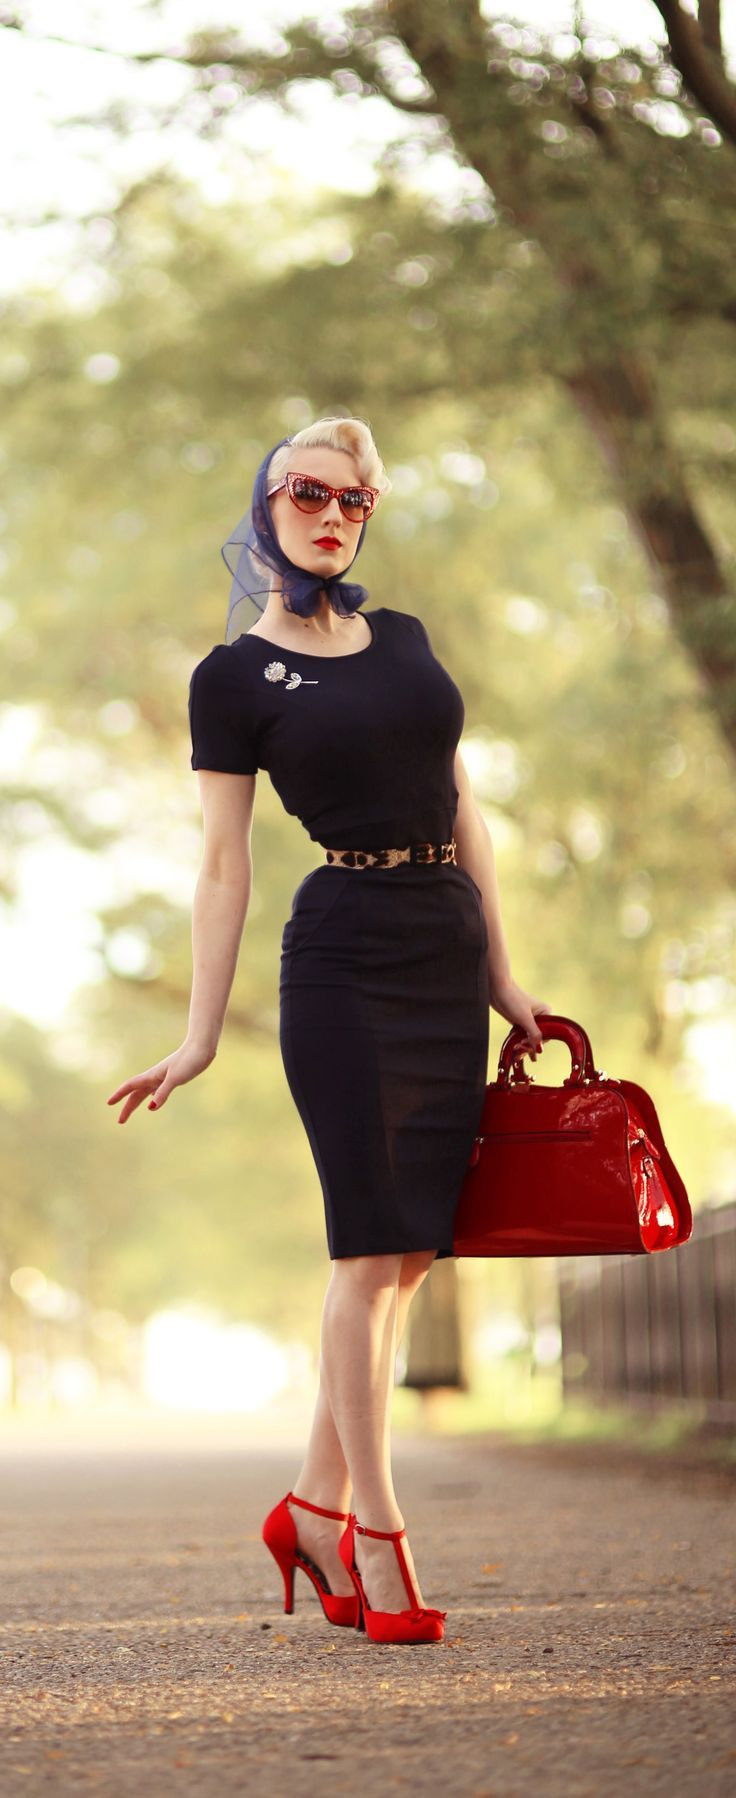 25 best ideas about 1950s style on pinterest 1950s fashion vintage fashion 1950s and 1950s. Black Bedroom Furniture Sets. Home Design Ideas